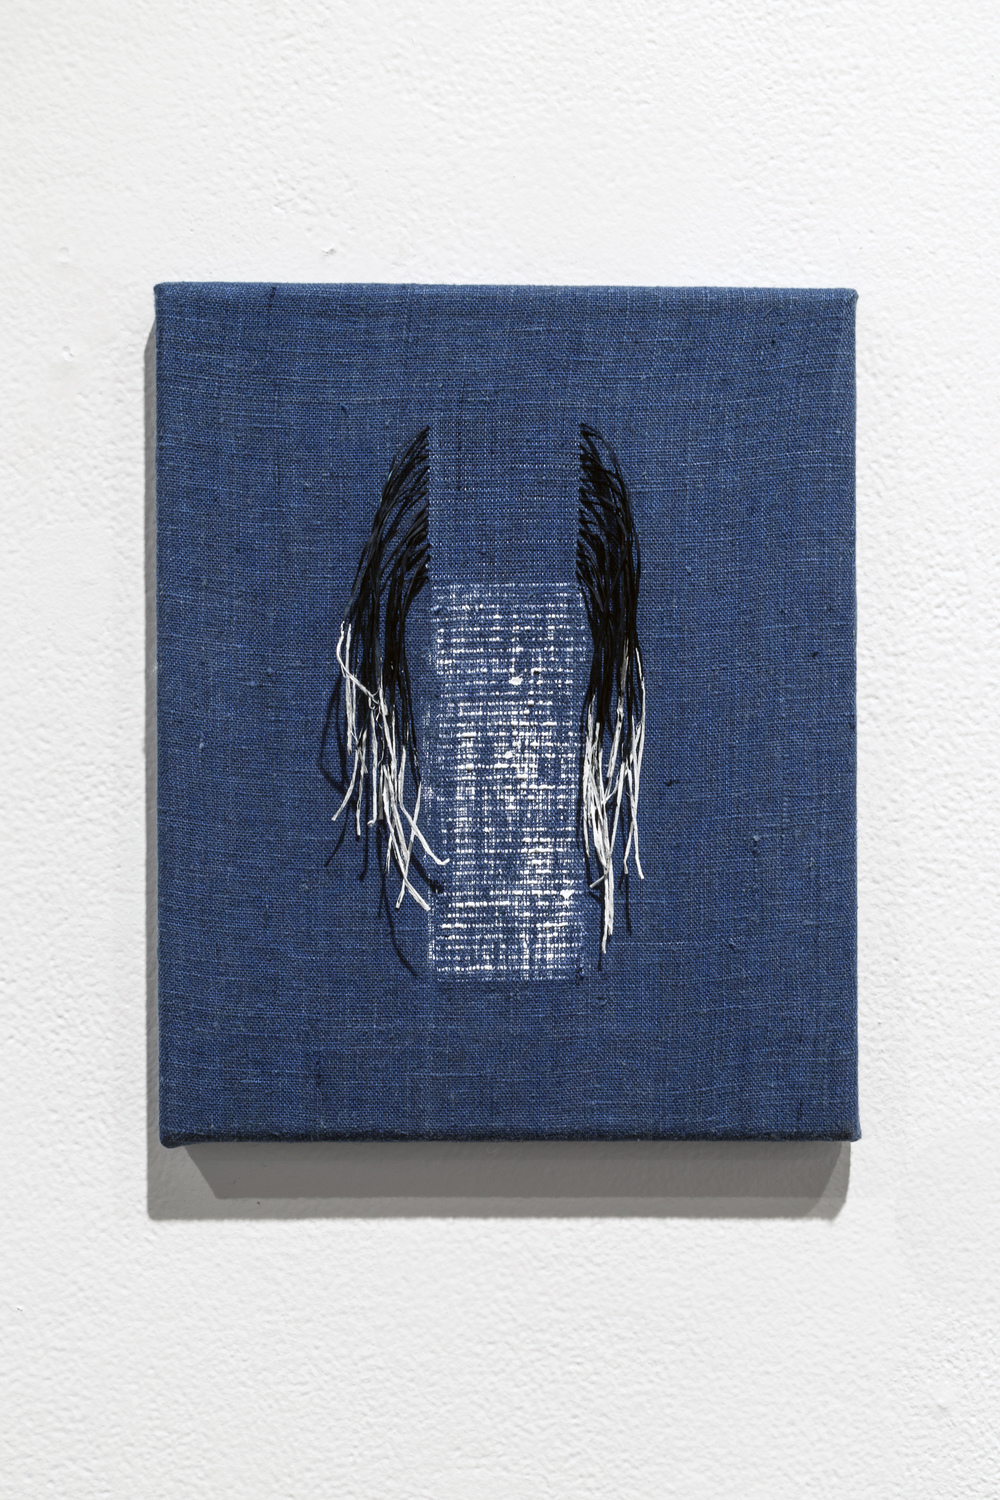 Indigo Weaving, 2014